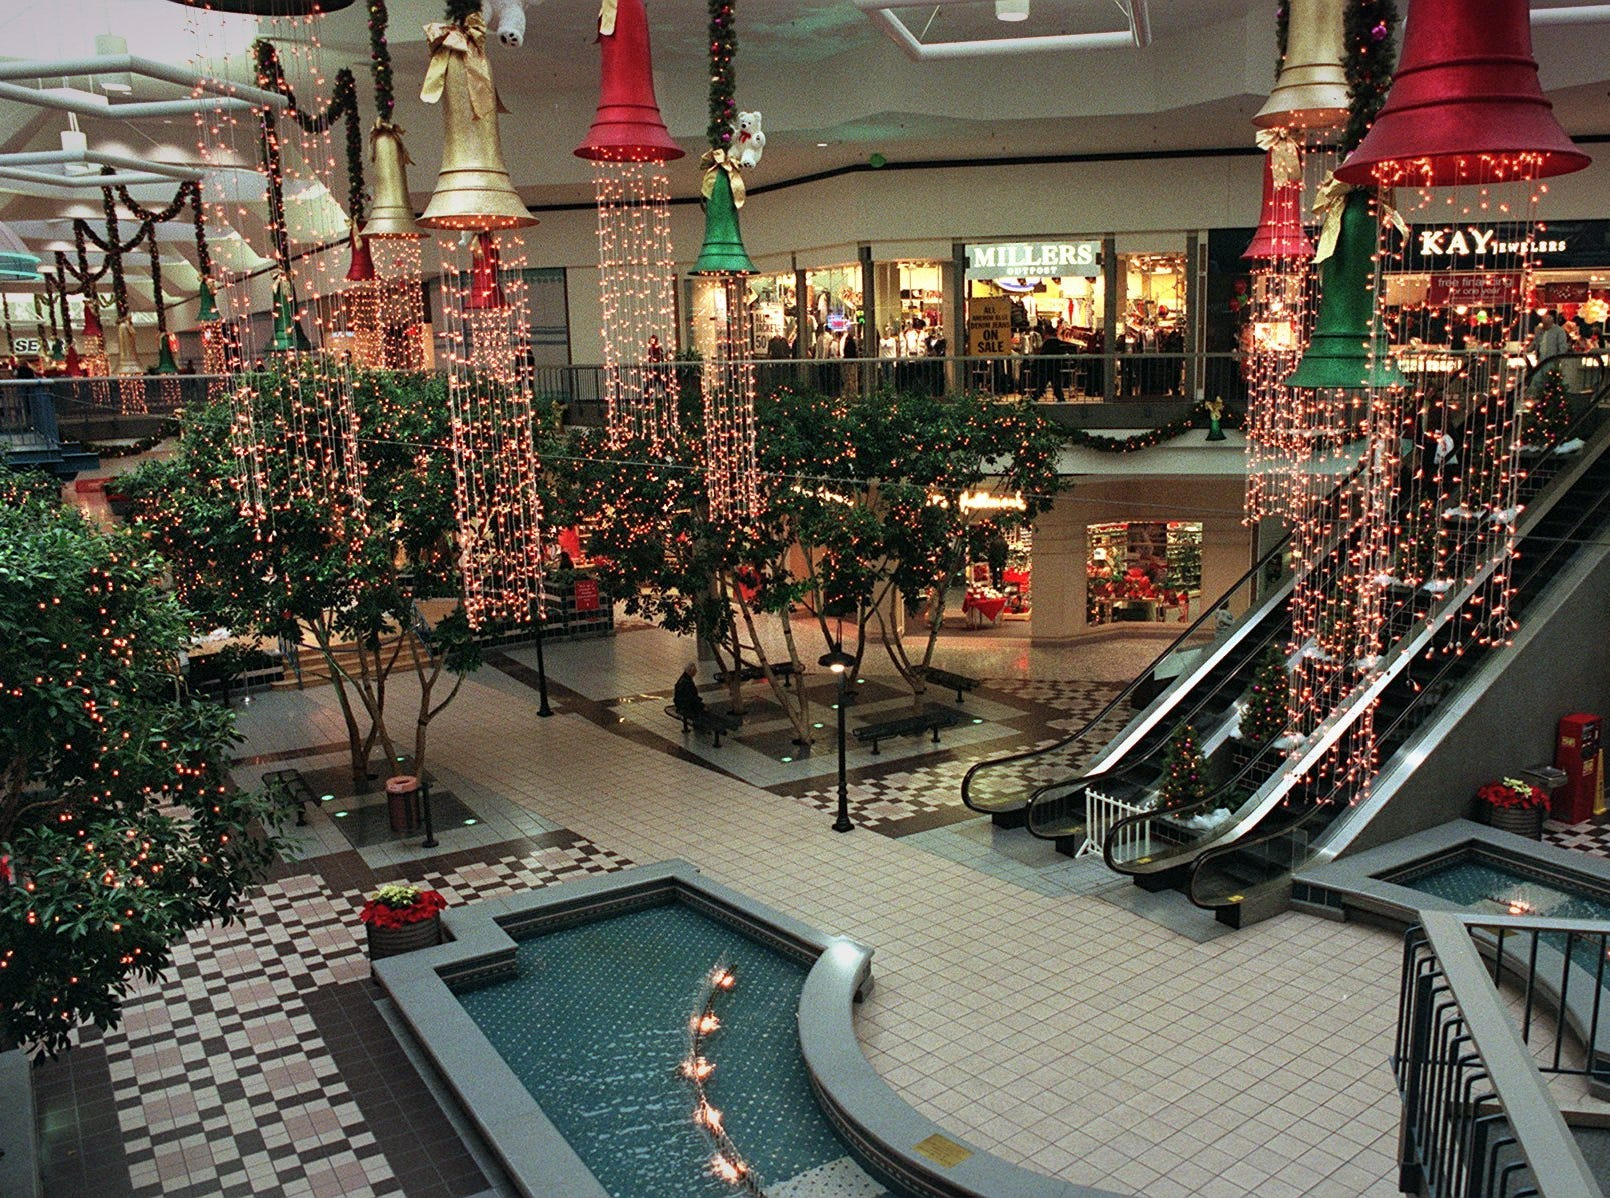 December 1999: Colorful Christmas lights adorn shops in Northridge Mall as they try to lure afternoon shoppers. The appraised value of the mall has plummeted to less than $30 million.